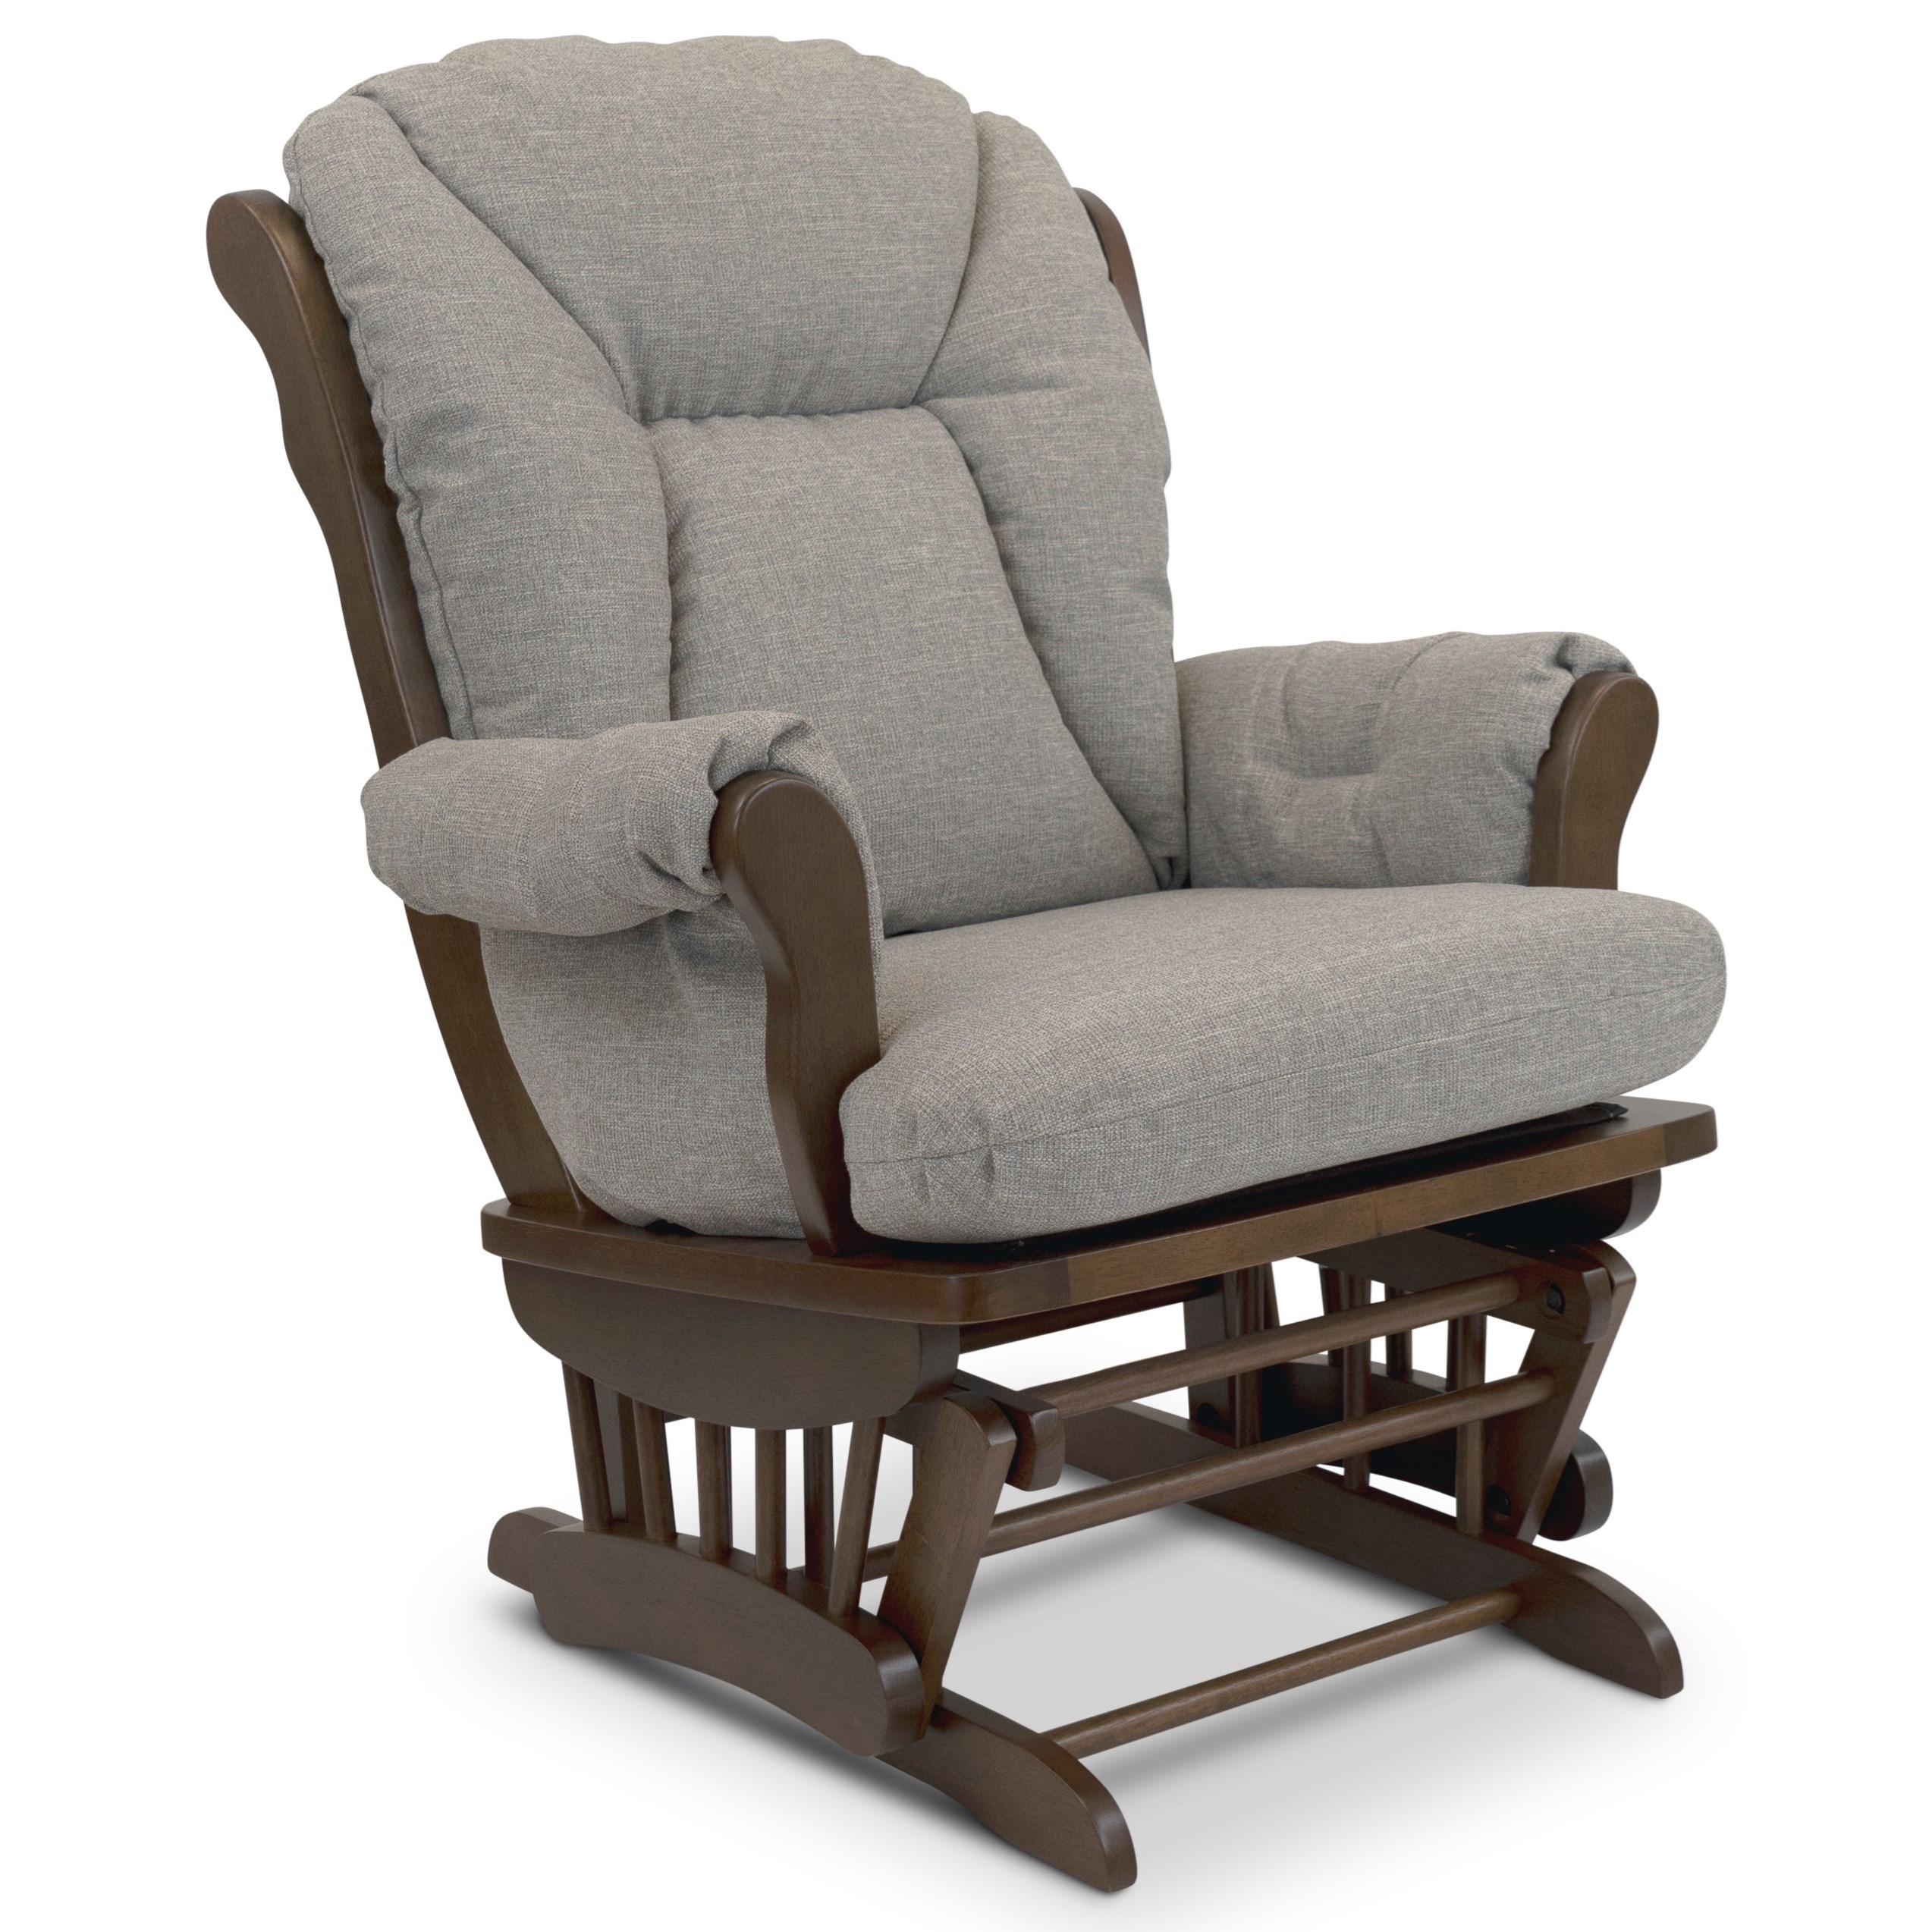 Upholstered Glide Rocker